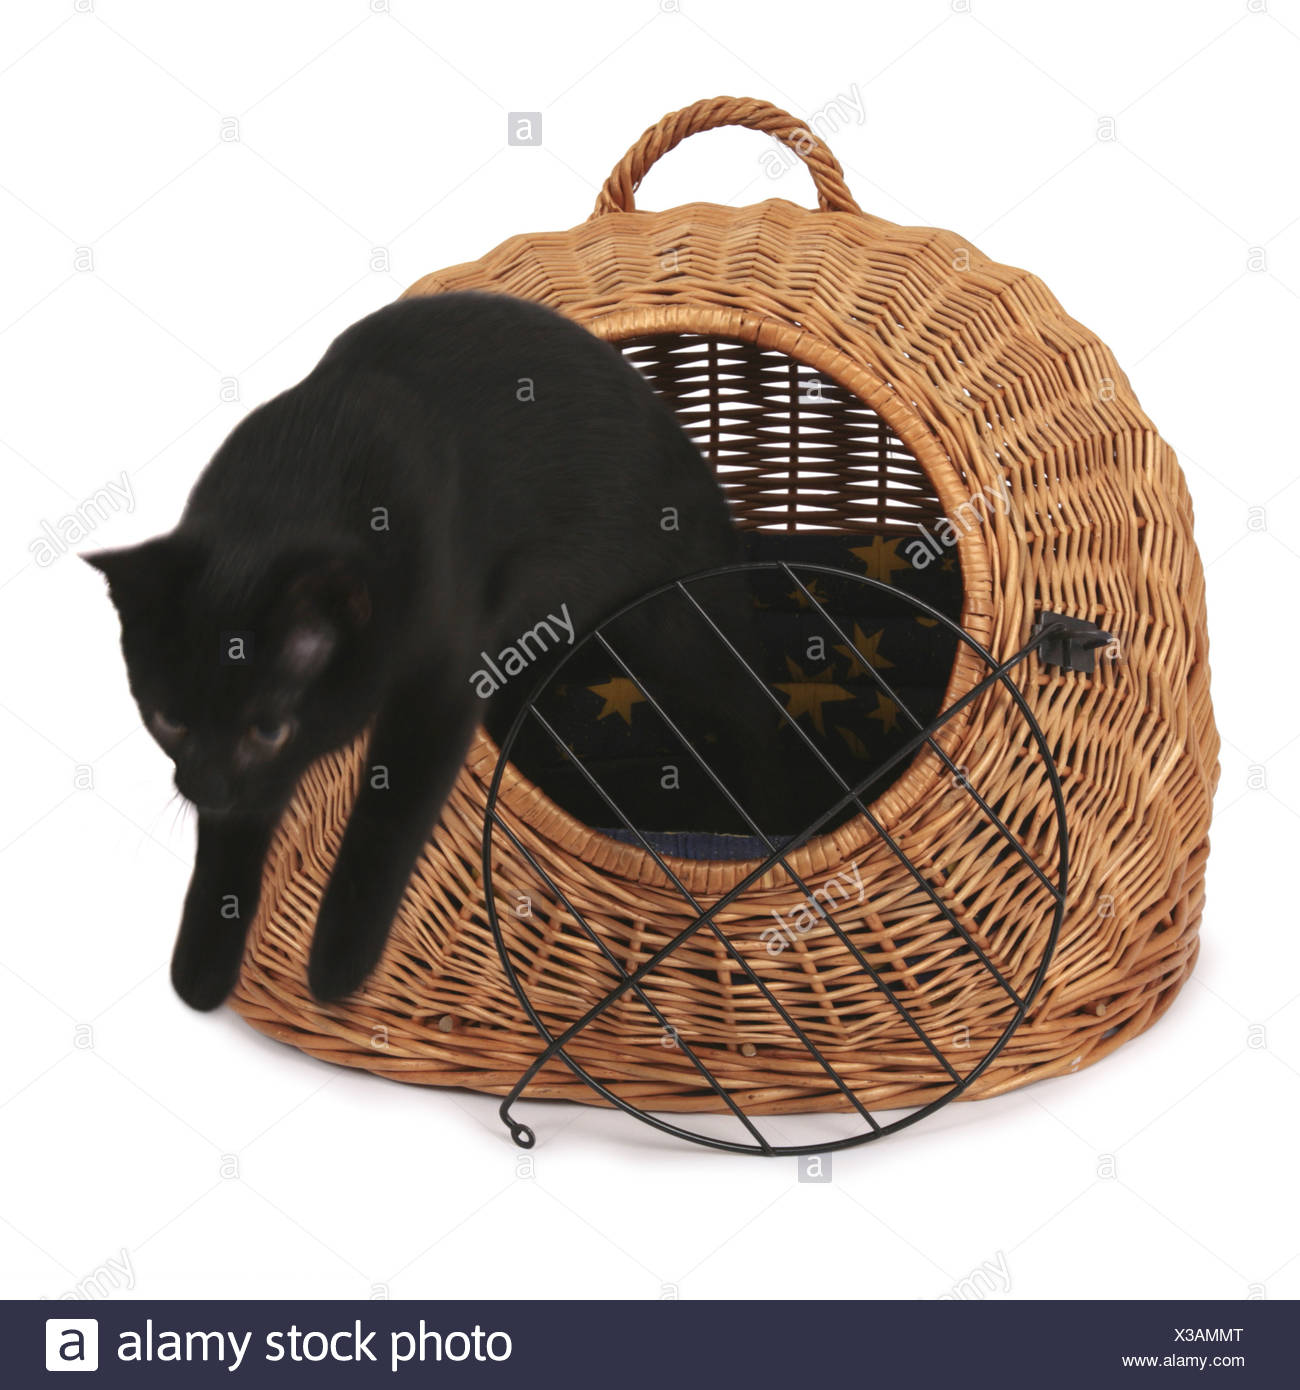 domestic cat, house cat (Felis silvestris f. catus), cat jumping out of cat basket - Stock Image